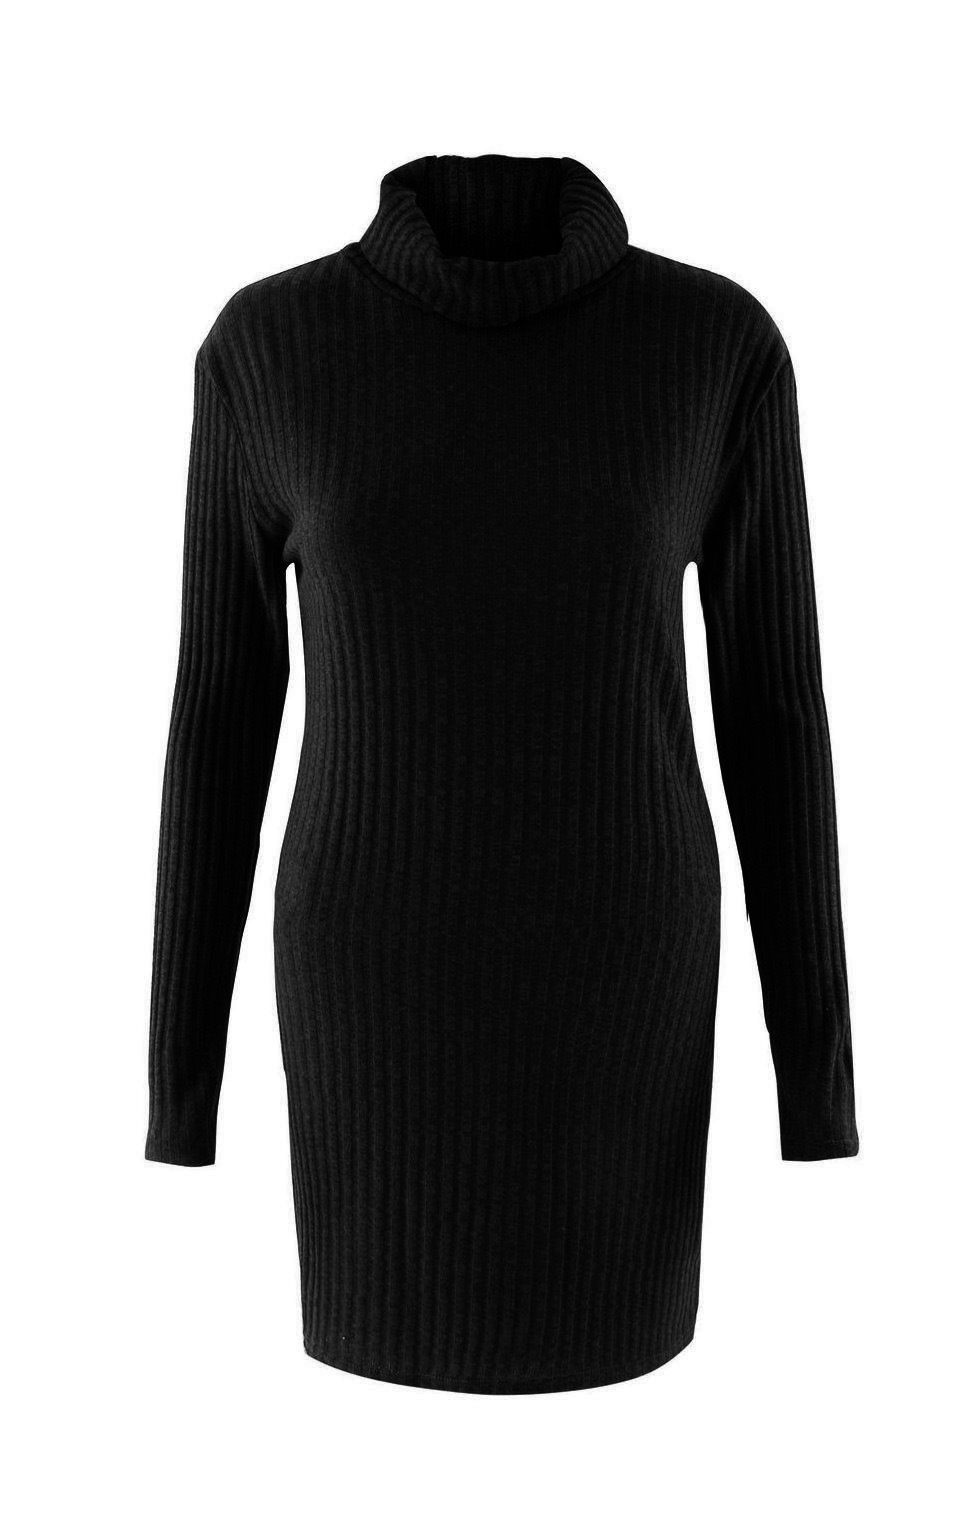 Turtleneck Long knitted pullover sweater, Women's Jumper, Casual Sweater 39